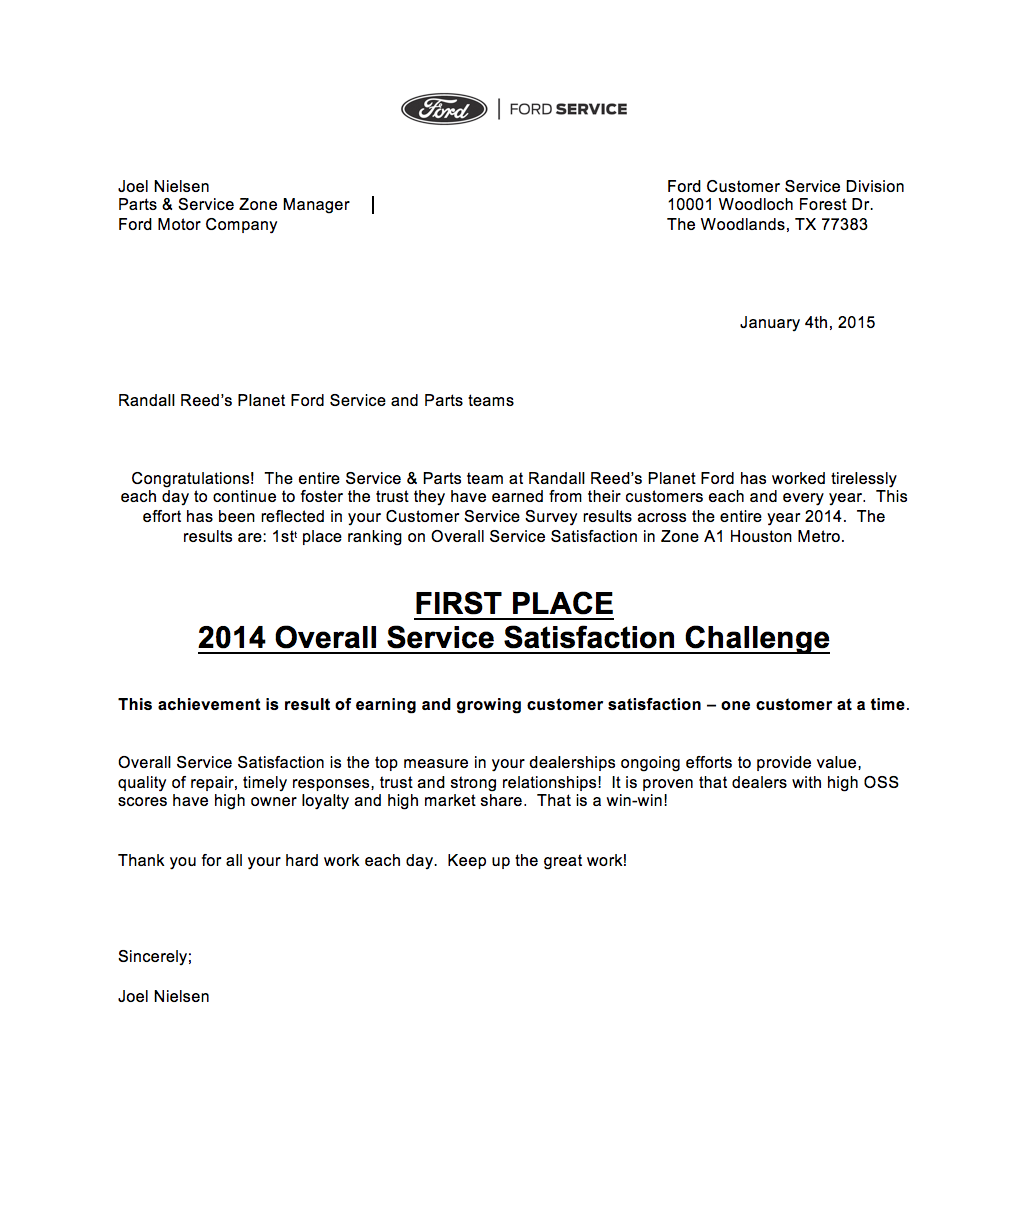 planet ford service quick lane bring home 1 customer